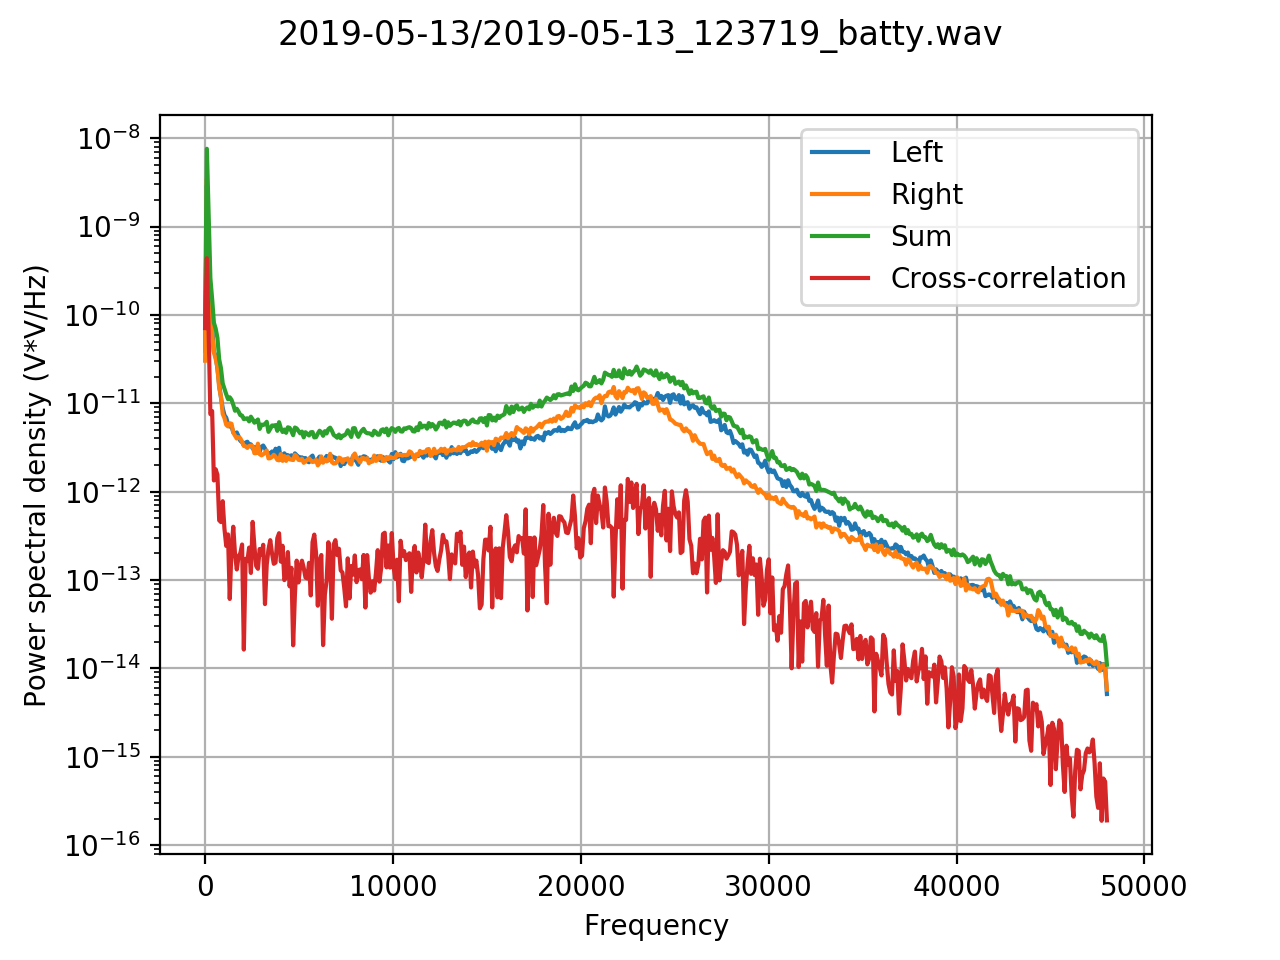 The noise floor for two microphones, their sum and cross-correlation